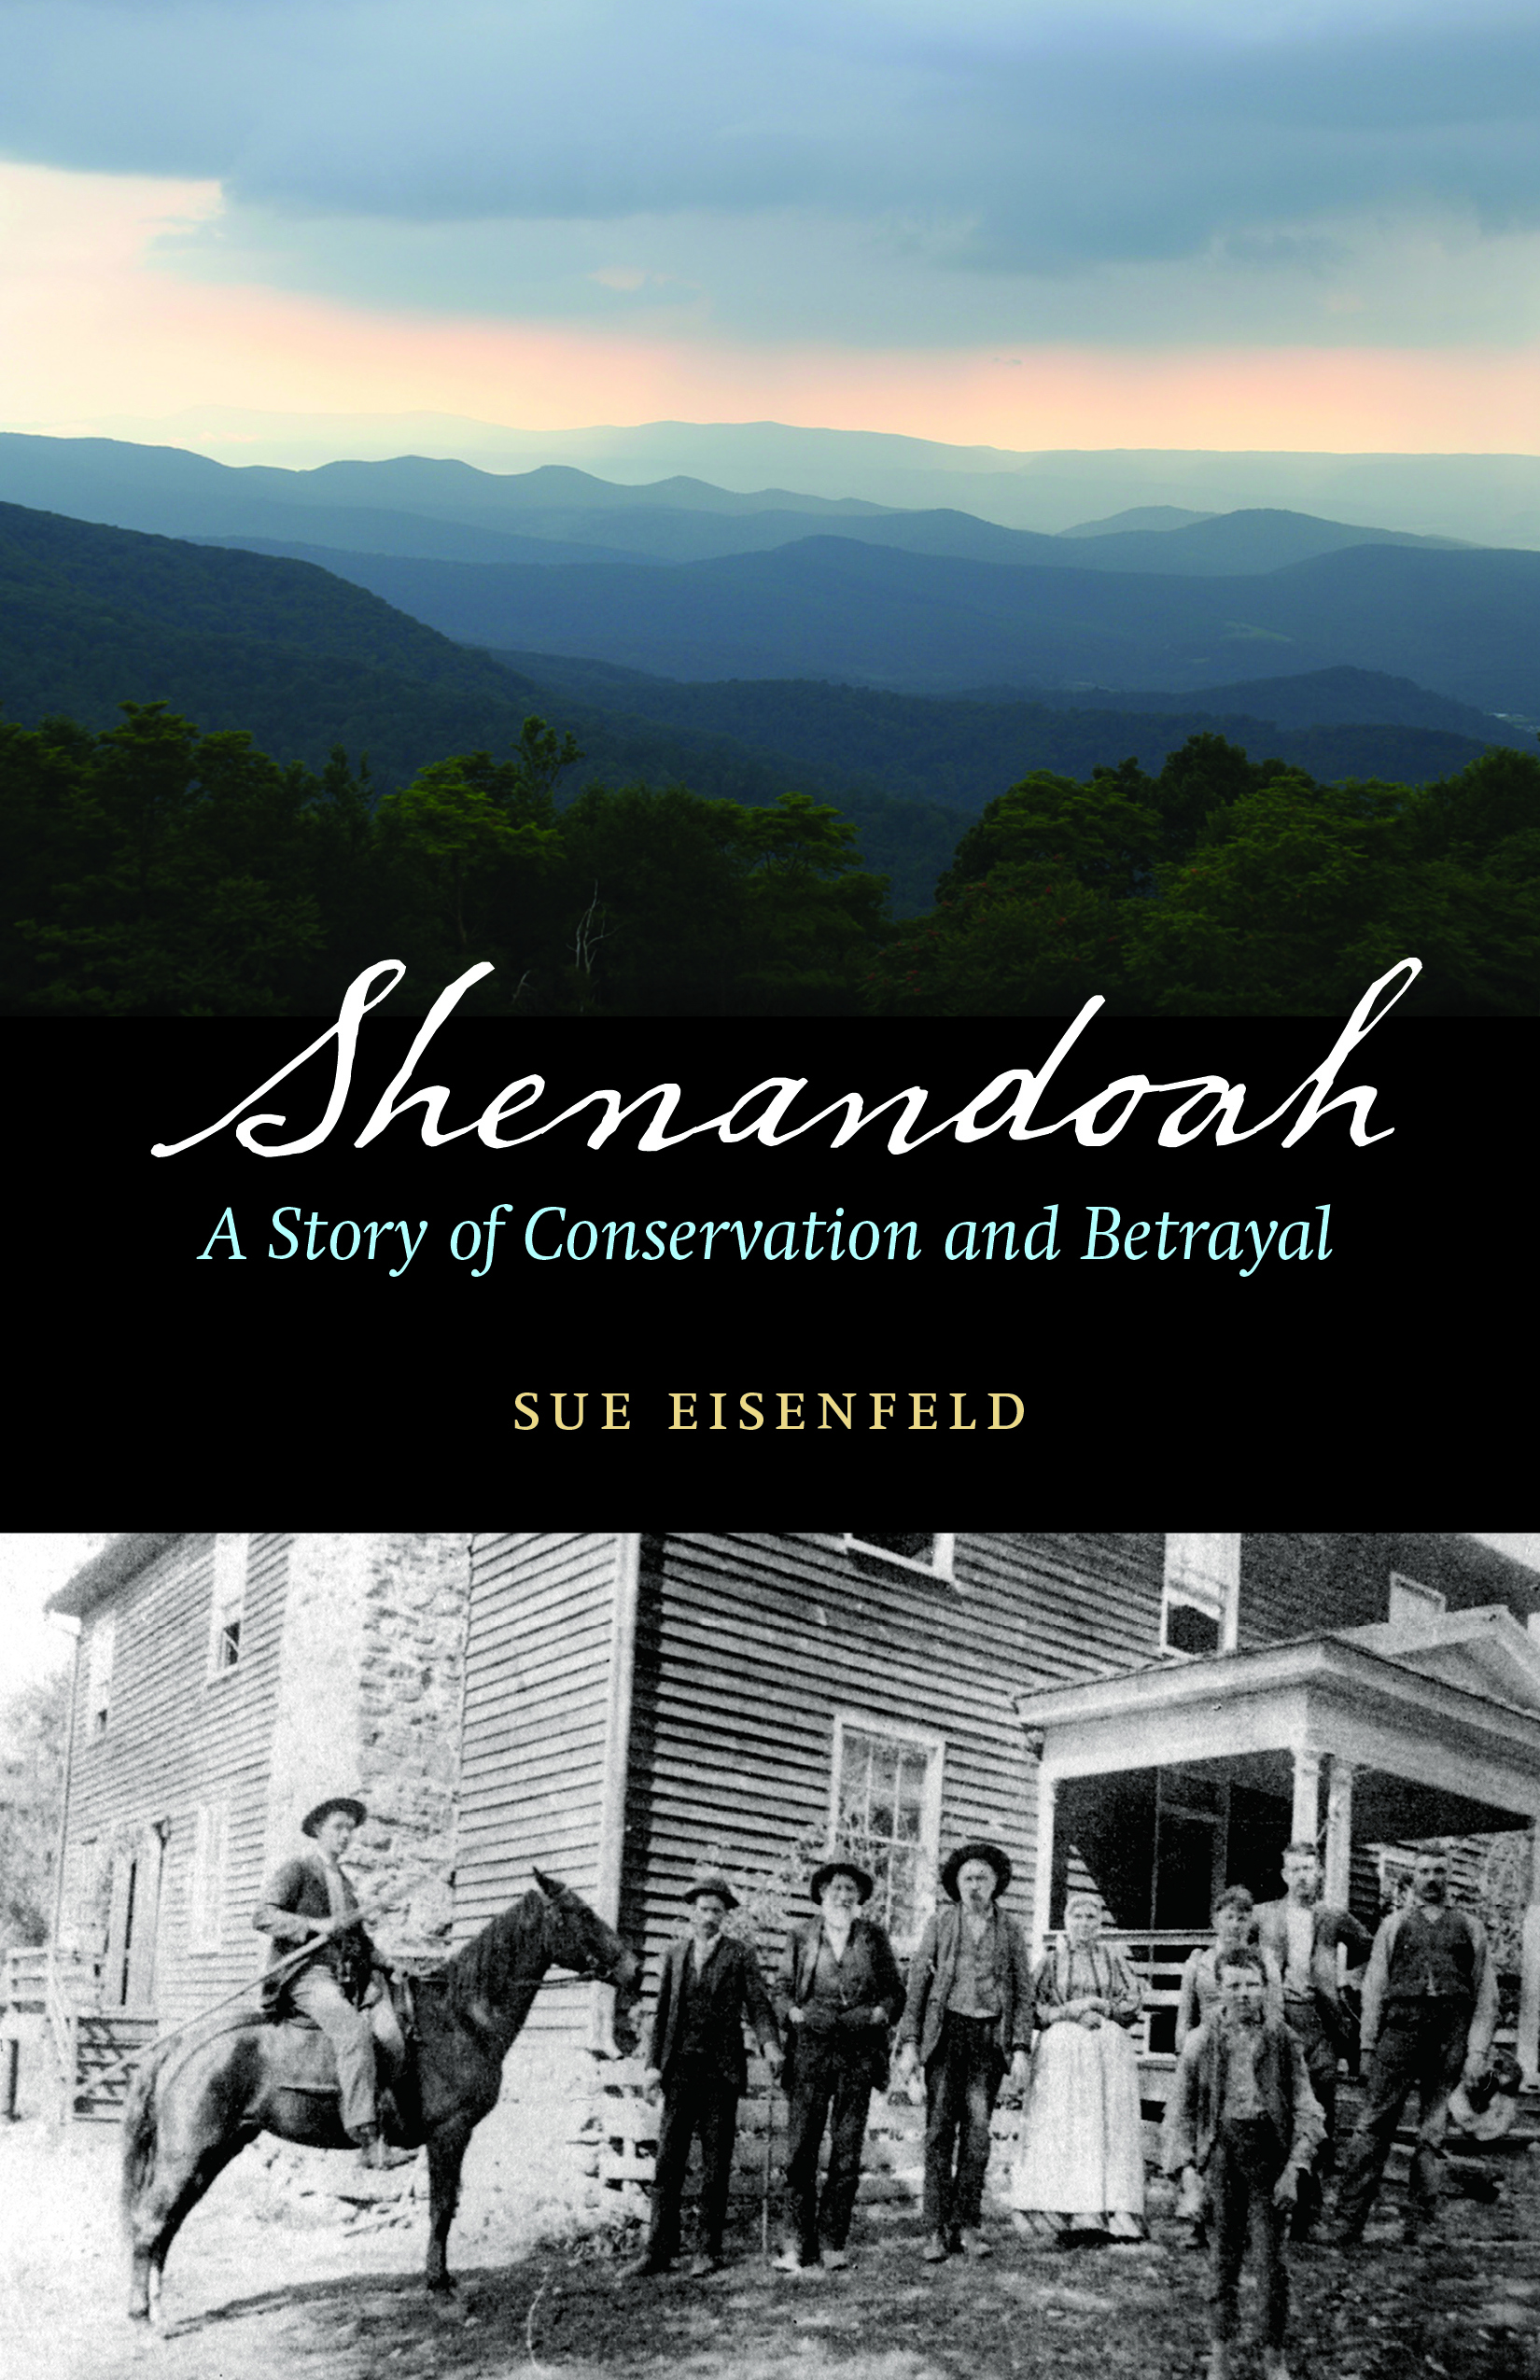 - Sue Eisenfeld is the author ofShenandoah: A Story of Conservation and Betrayal (University of Nebraska Press)-Sue is a contributing author to The New York Times' Disunion: A History of the Civil War (Oxford University Press)